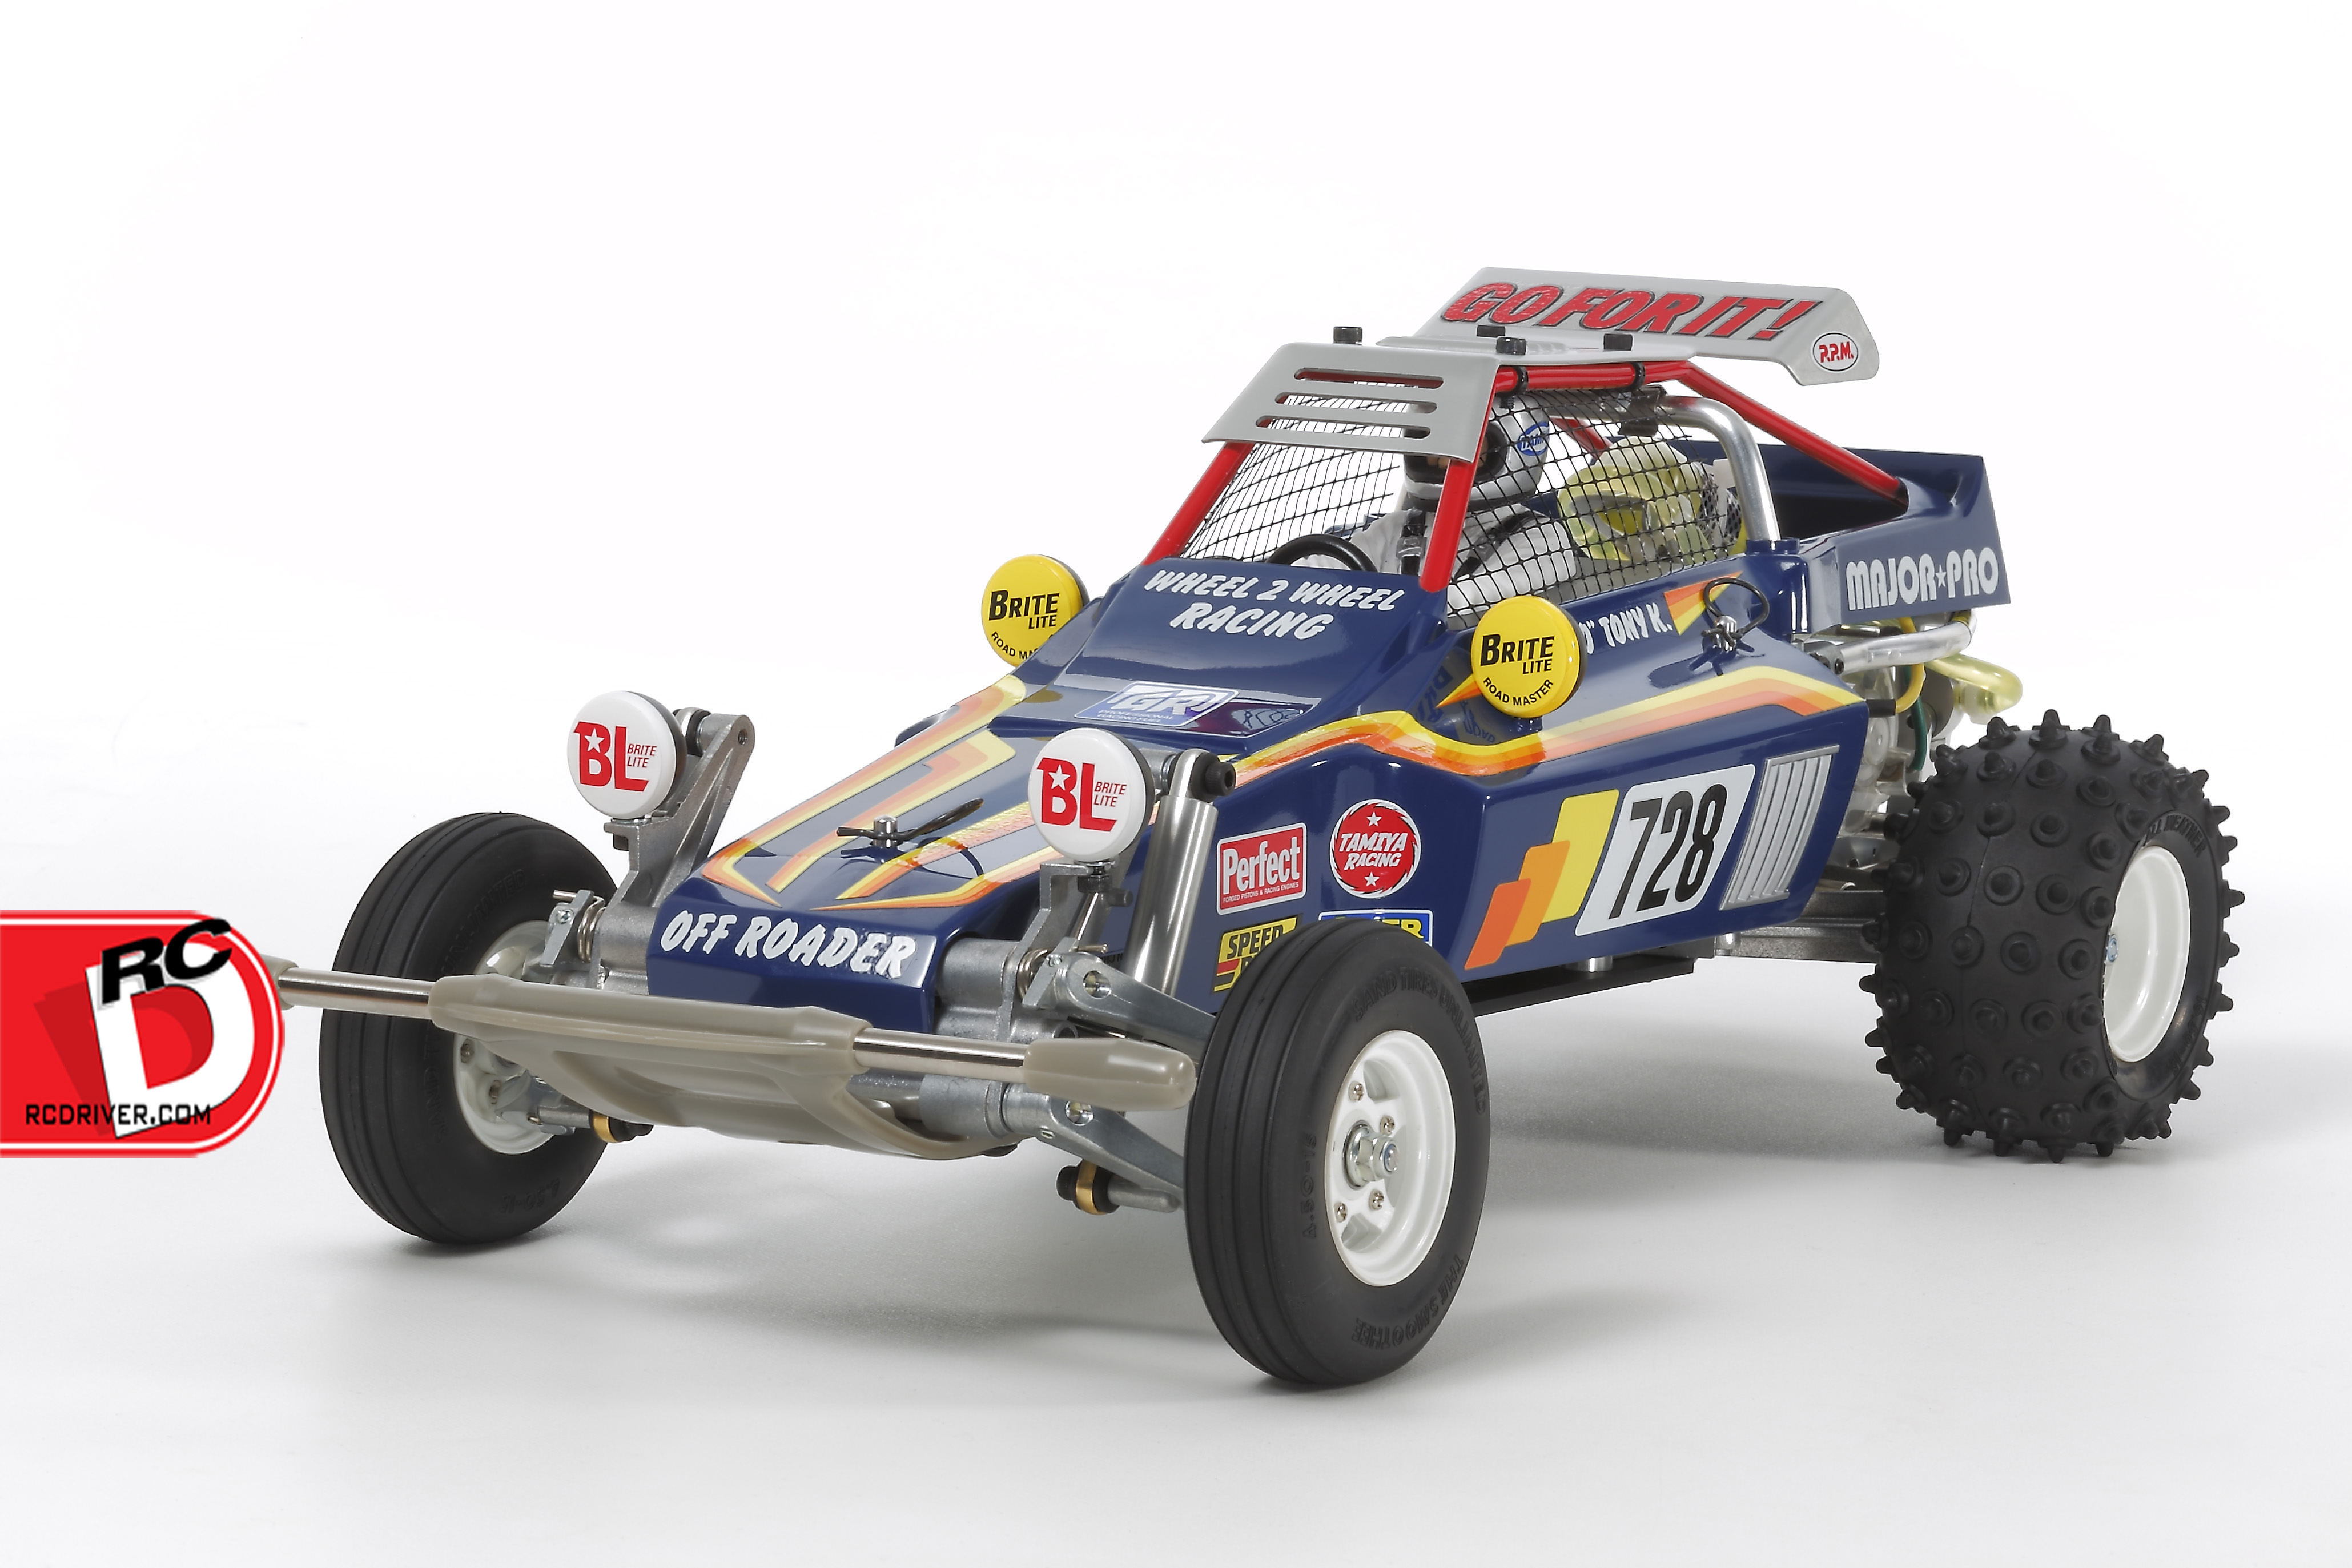 cheap rc kits with Tamiya Fighting Buggy 2014 Limited Edition on Old Builds The 1 25 Rc Chevy Caprice in addition Homebuilt experimental also Jetfirebalsaglider in addition Baframodelucakplanlari wordpress besides Top Rated Rc Drift Chassis Under 150.